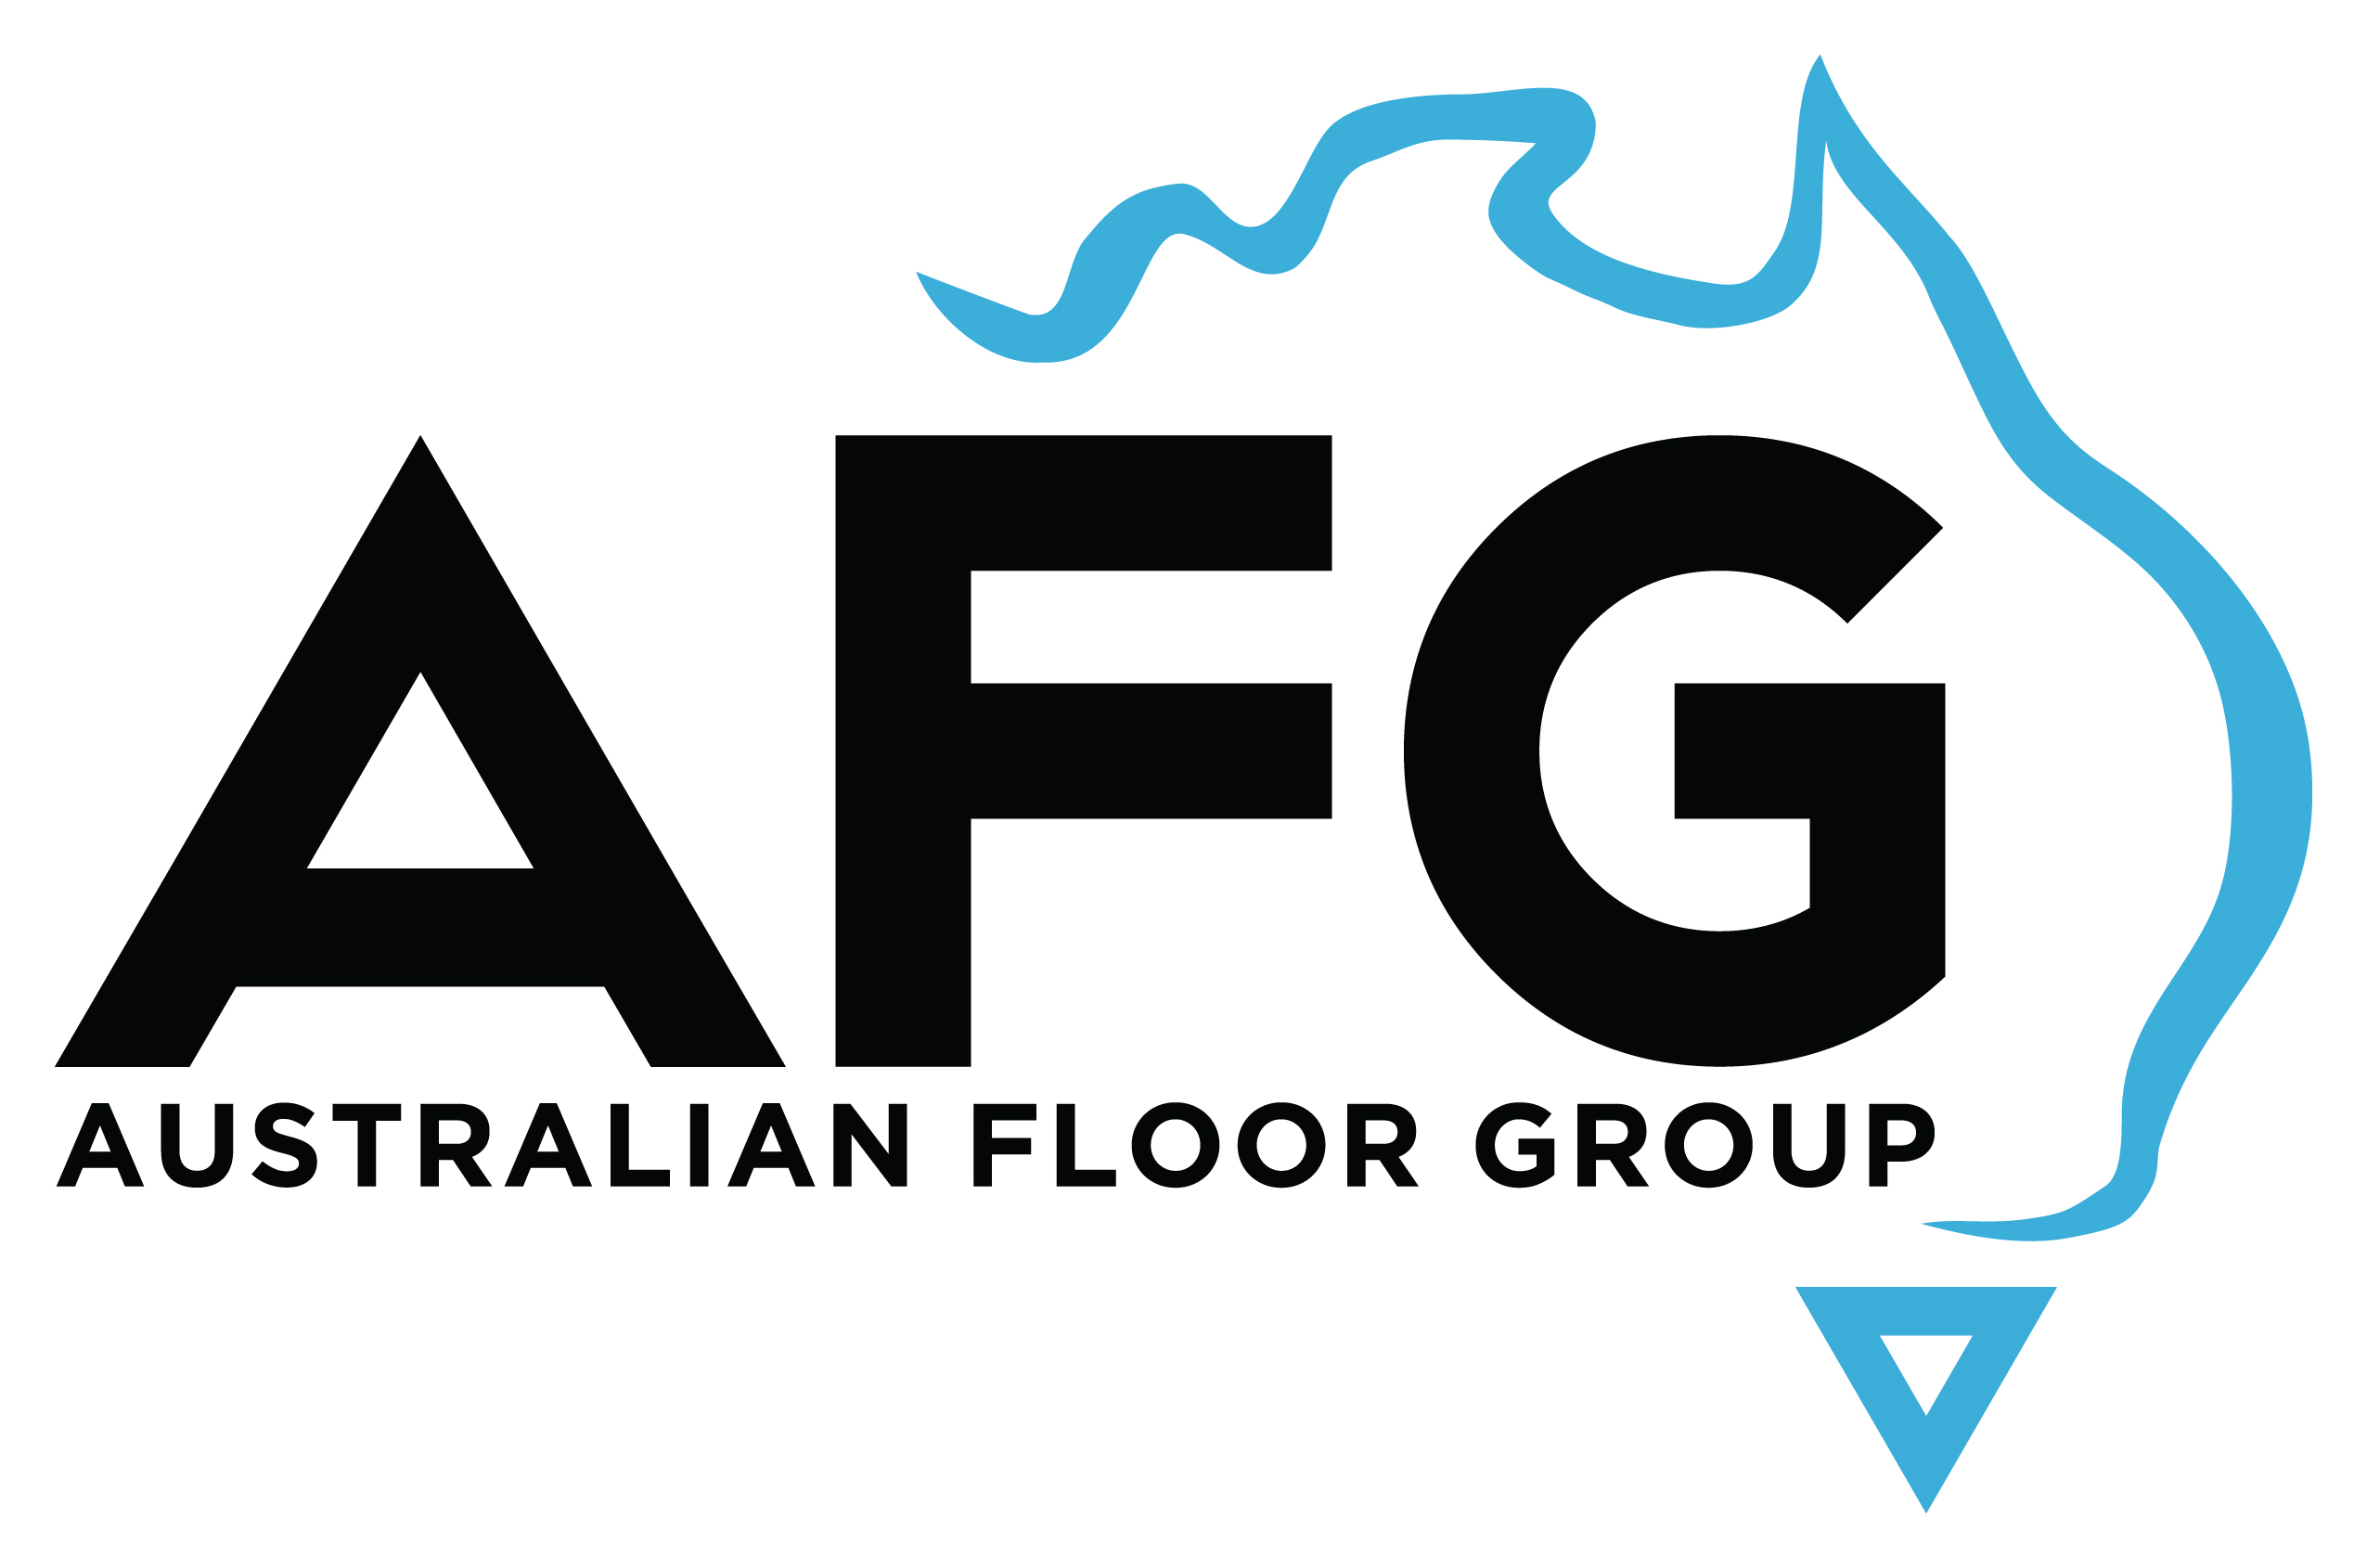 Australian Floor Group